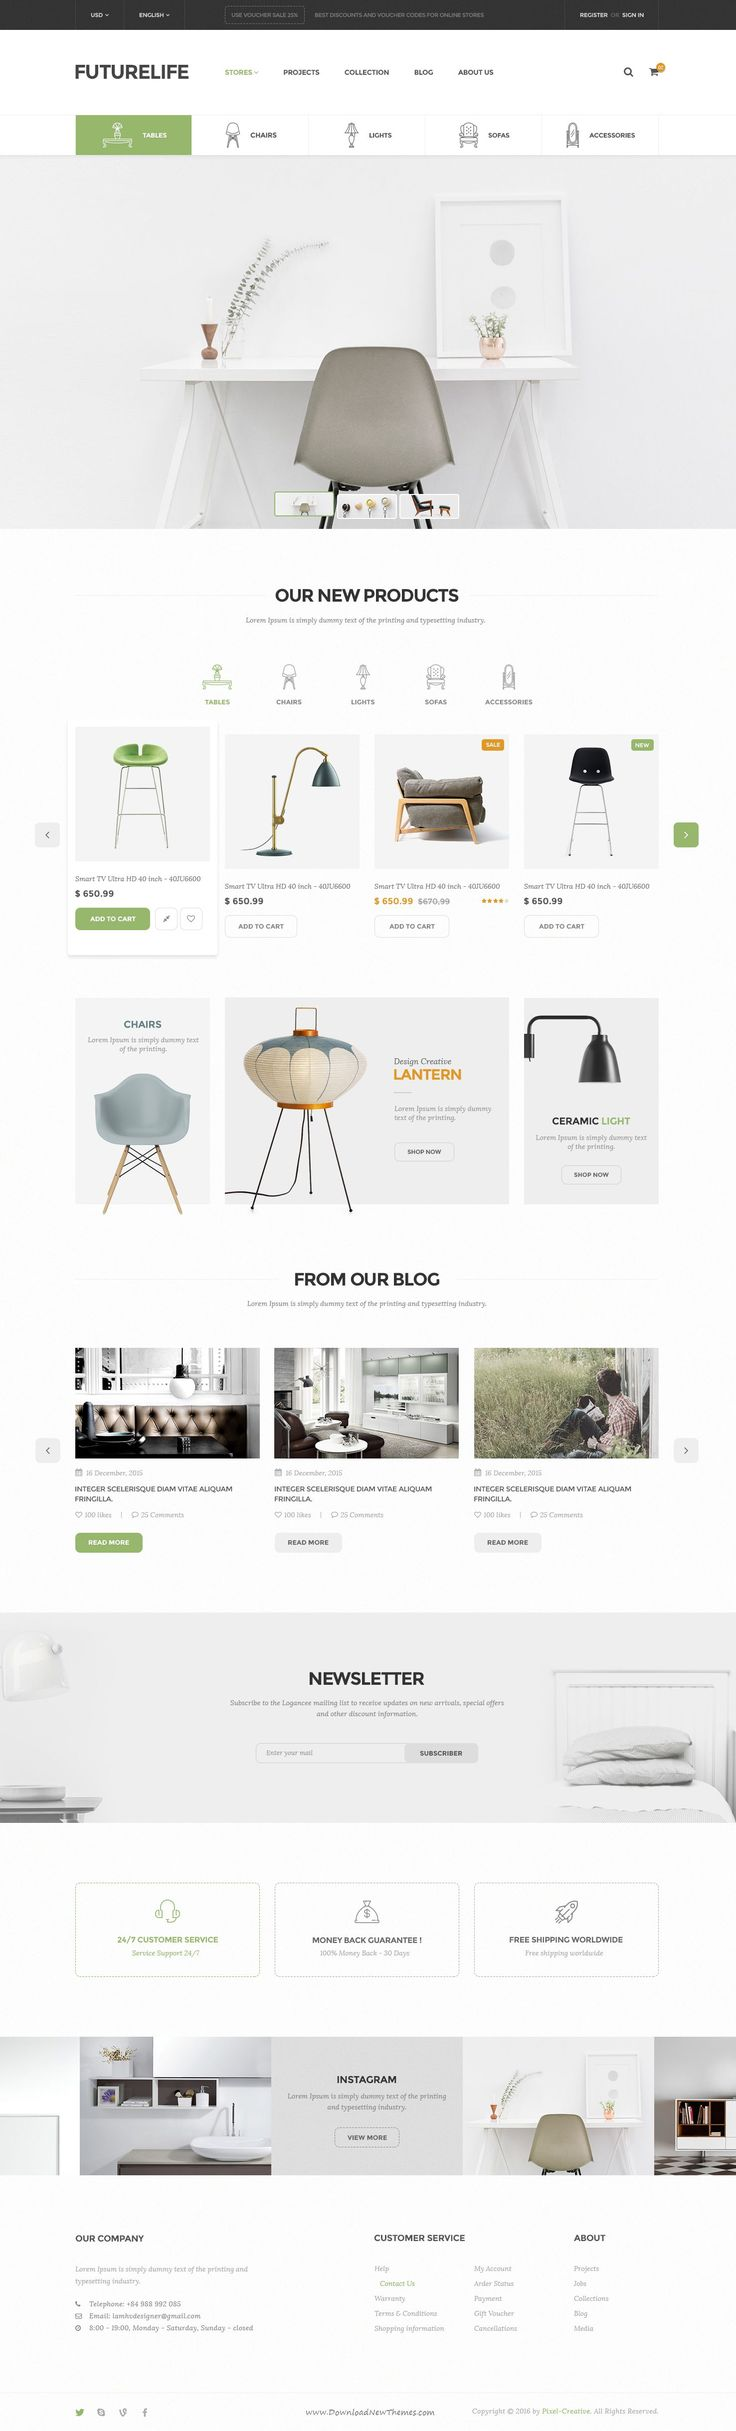 Futurelife – Ecommerce PSD Template is a uniquely eCommerce #website template designed in Photoshop with a modern look. Perfect for #furniture or interior shop. #Ecommerce